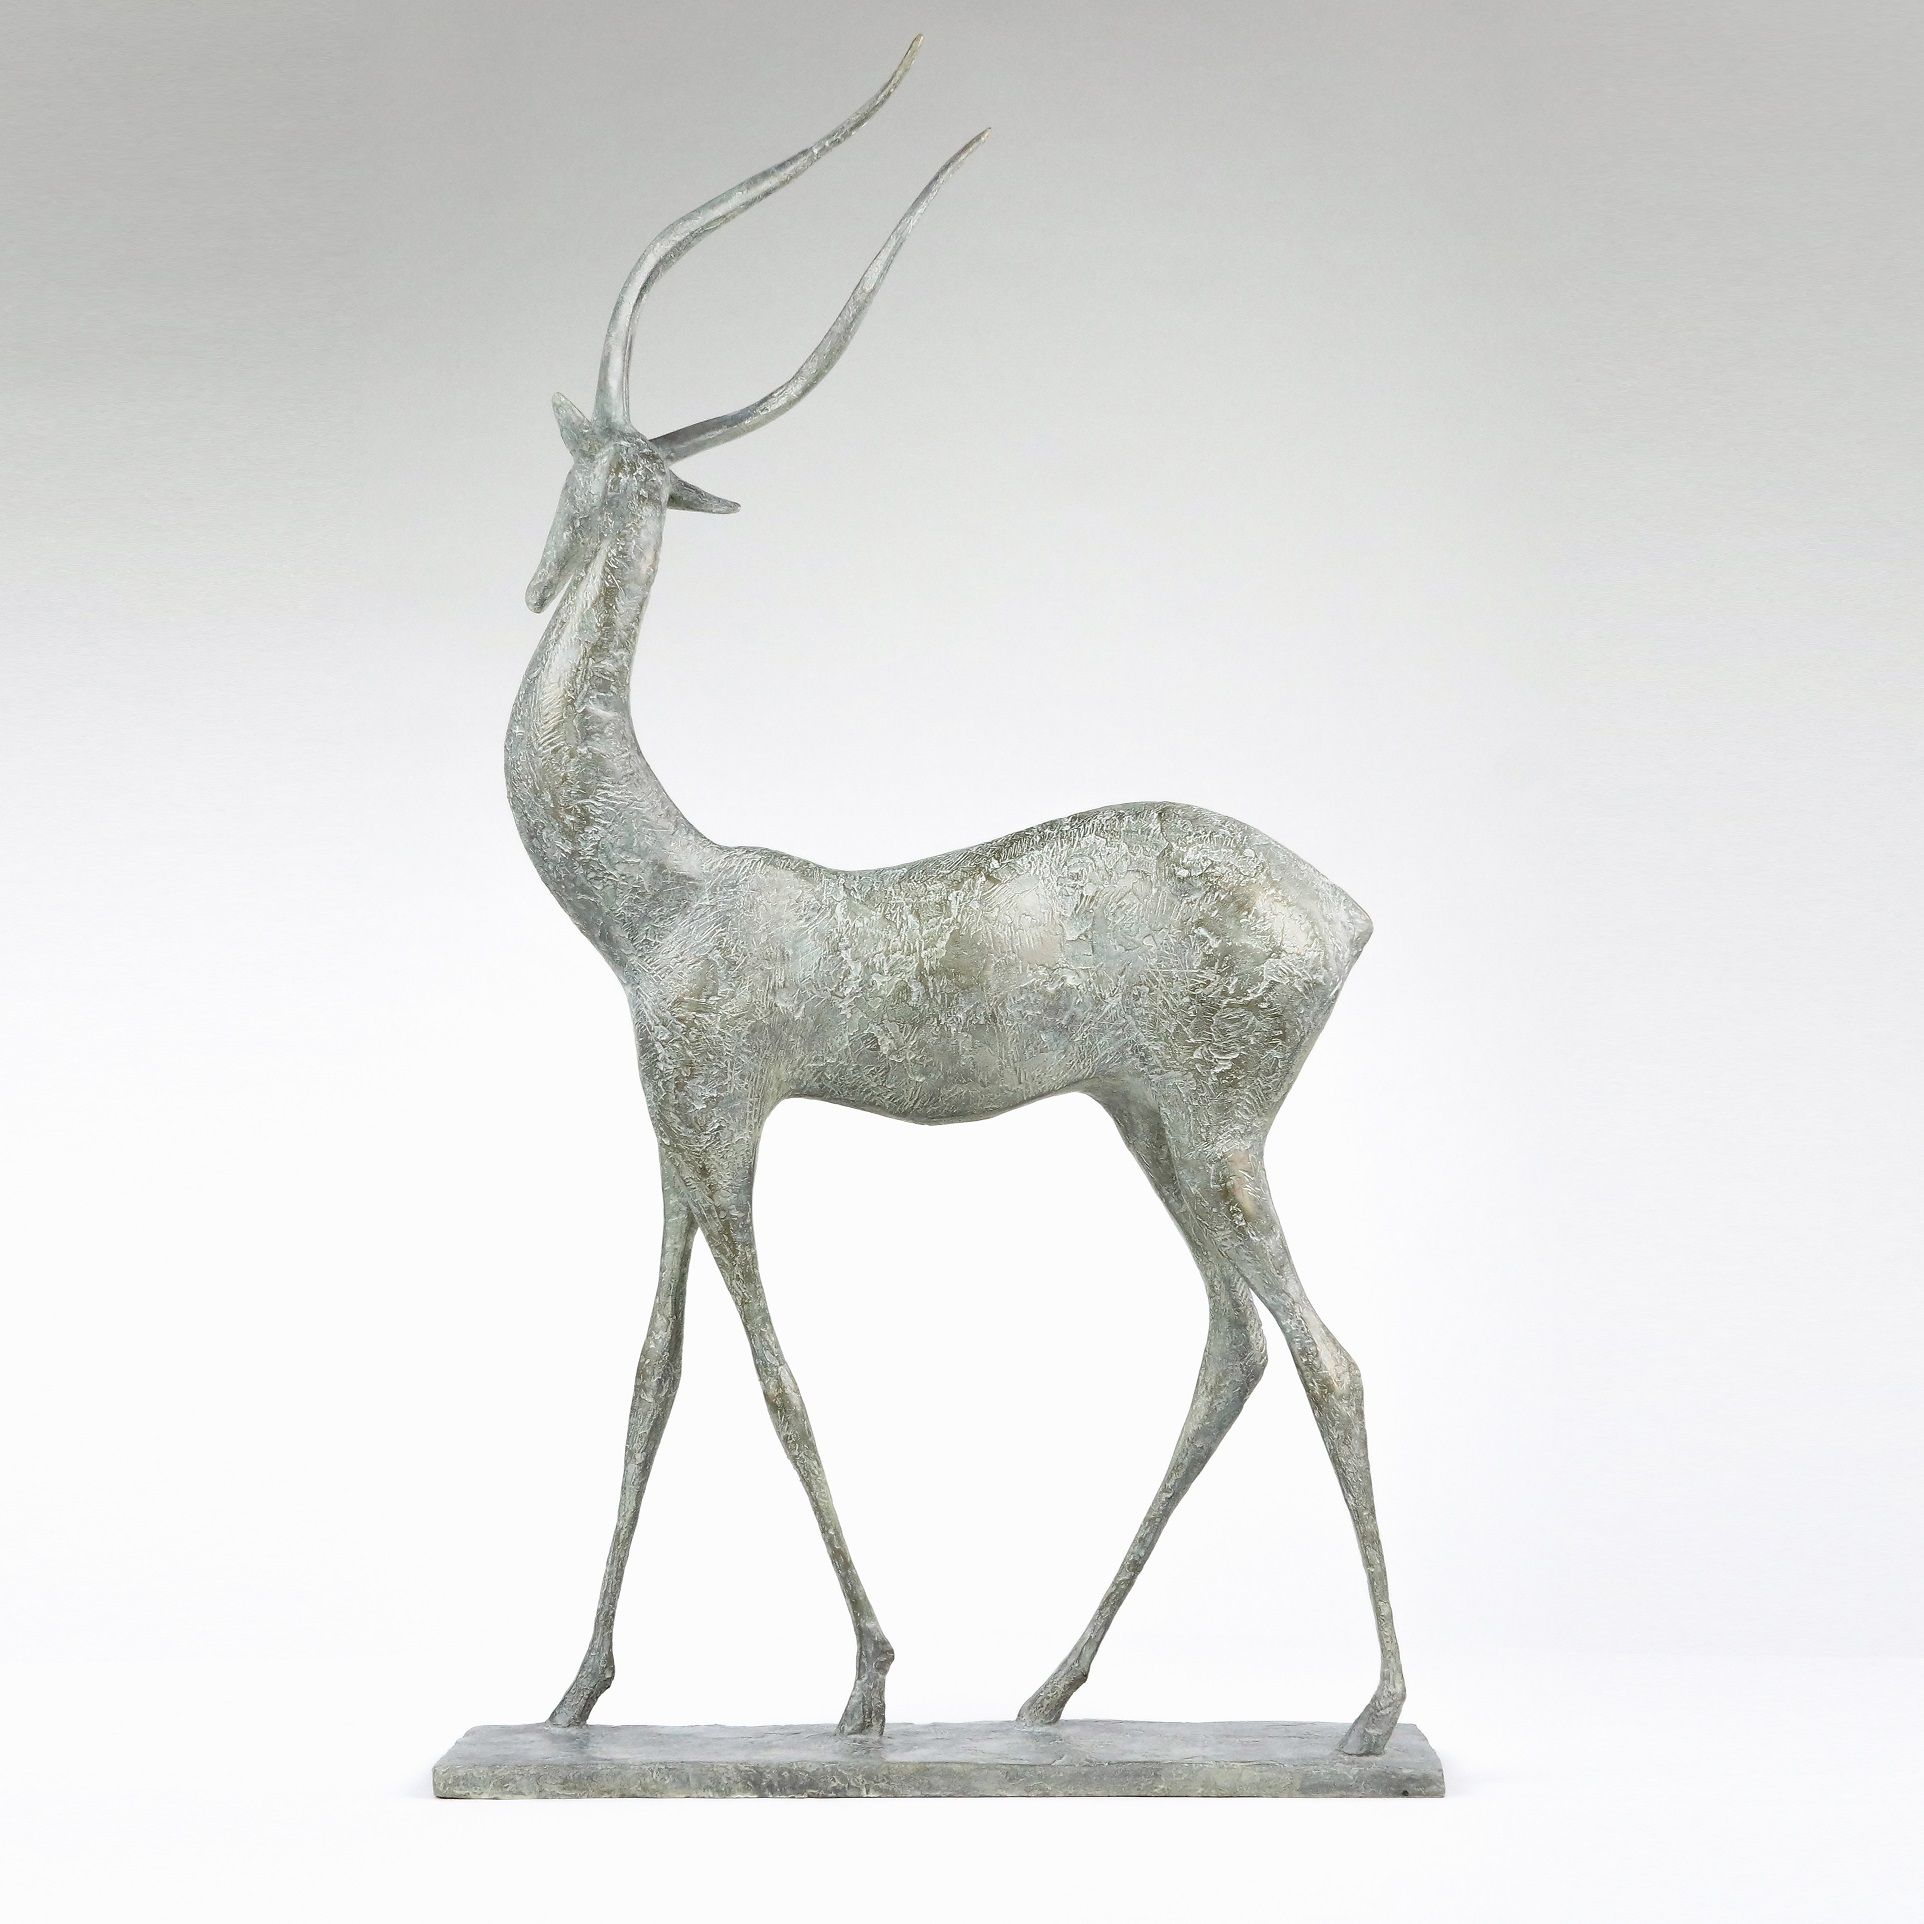 Gazelle II,Pierre Yermia,Sculpture, detail 2